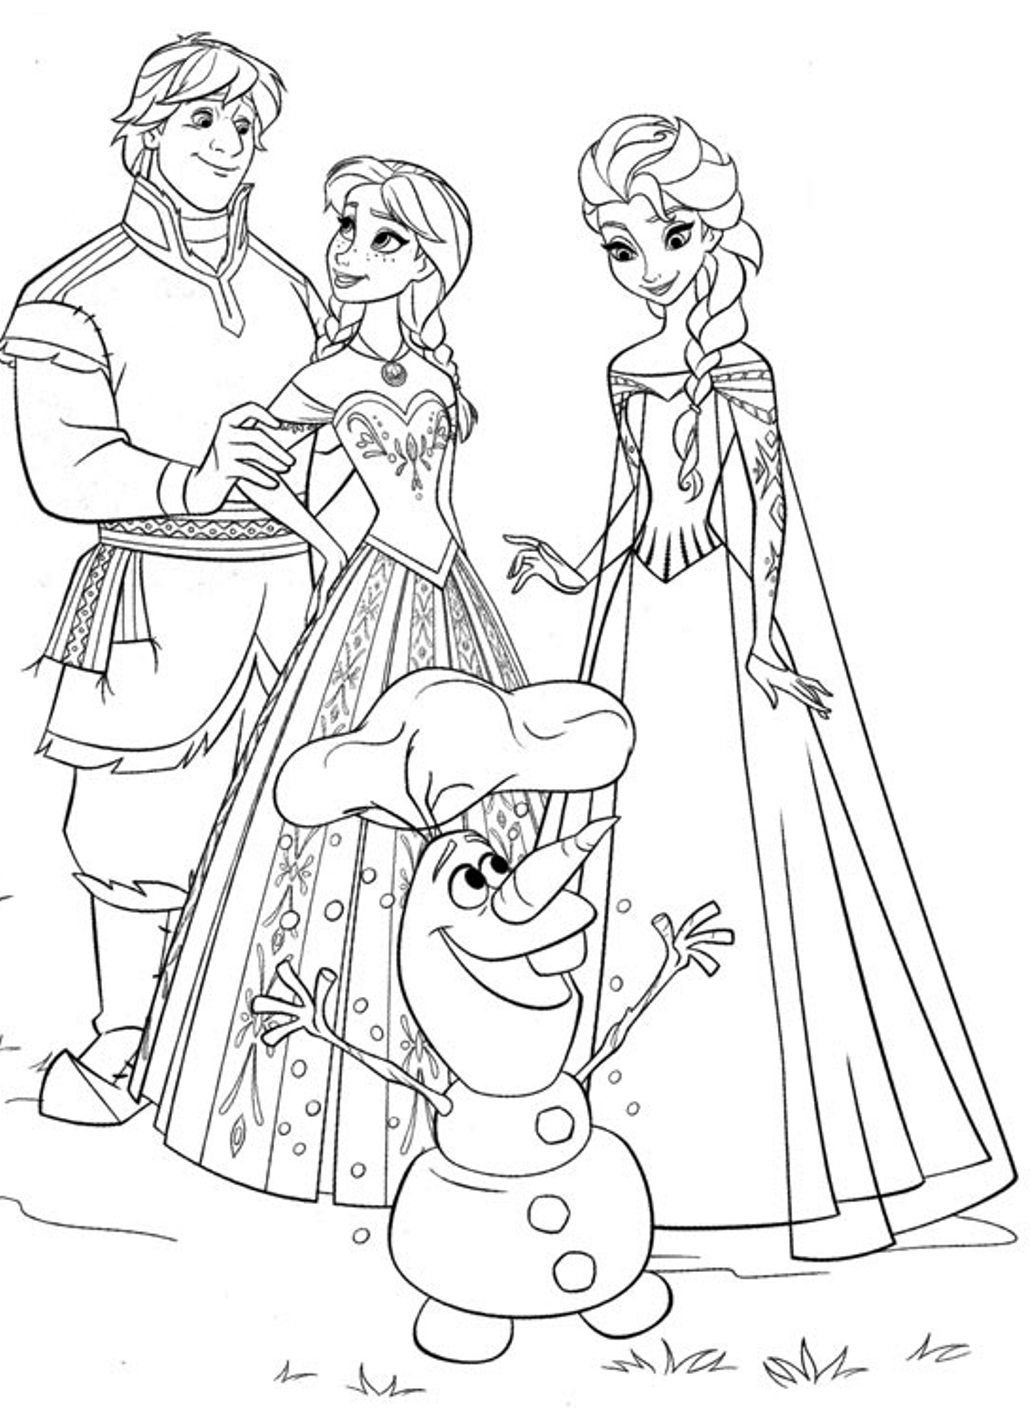 frozen coloring pages for print - photo#41